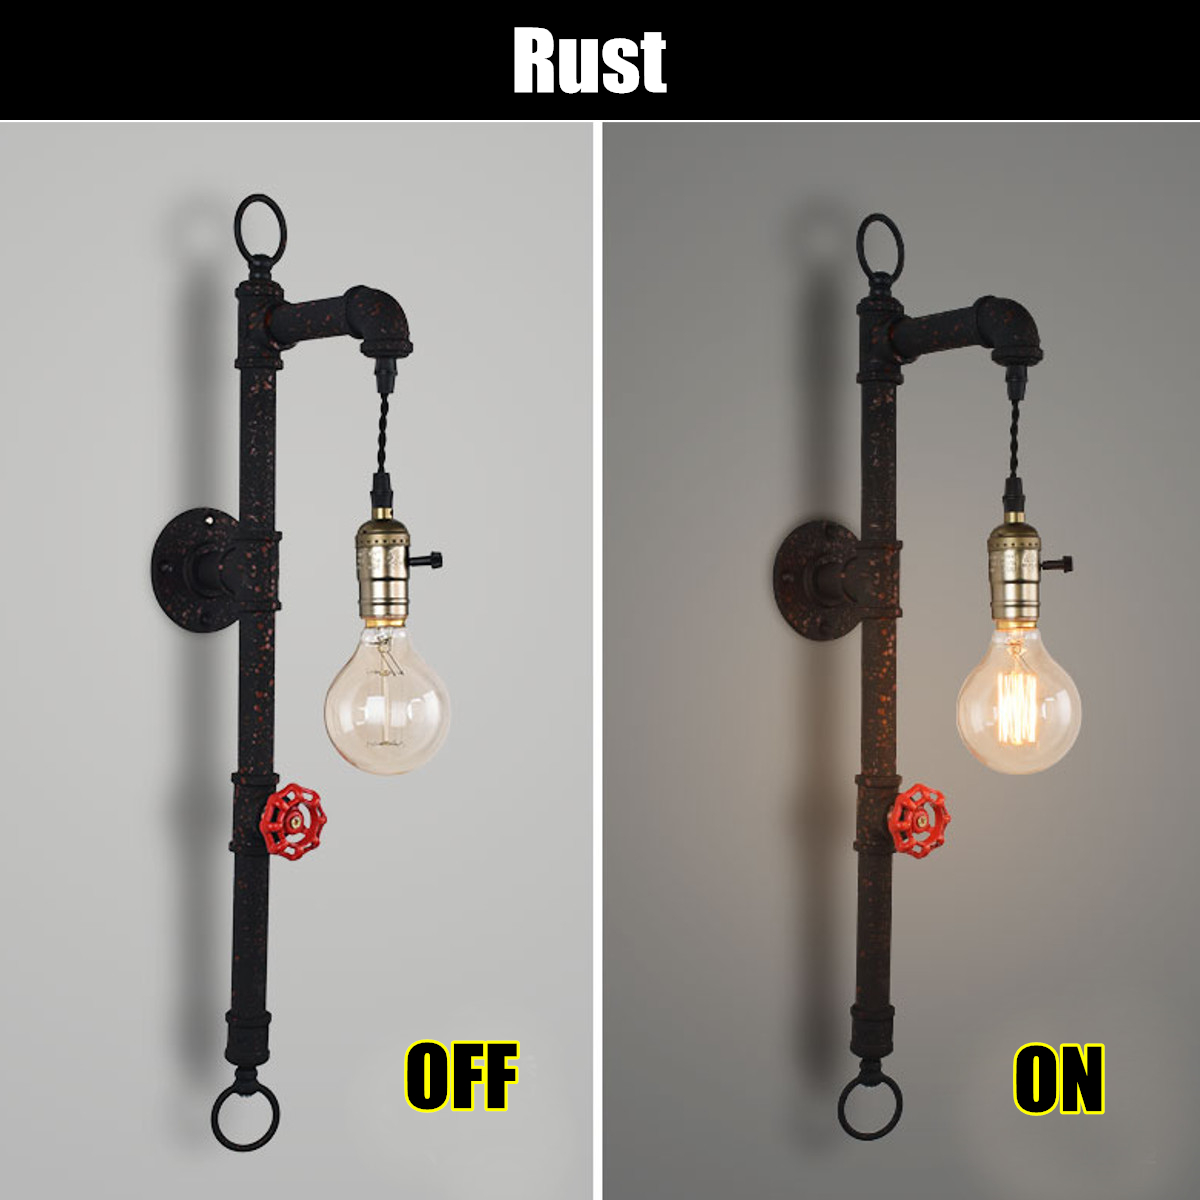 Iron Pipe Light Fixture Vintage Industrial Wall Light Sconce Retro Lamp Steampunk